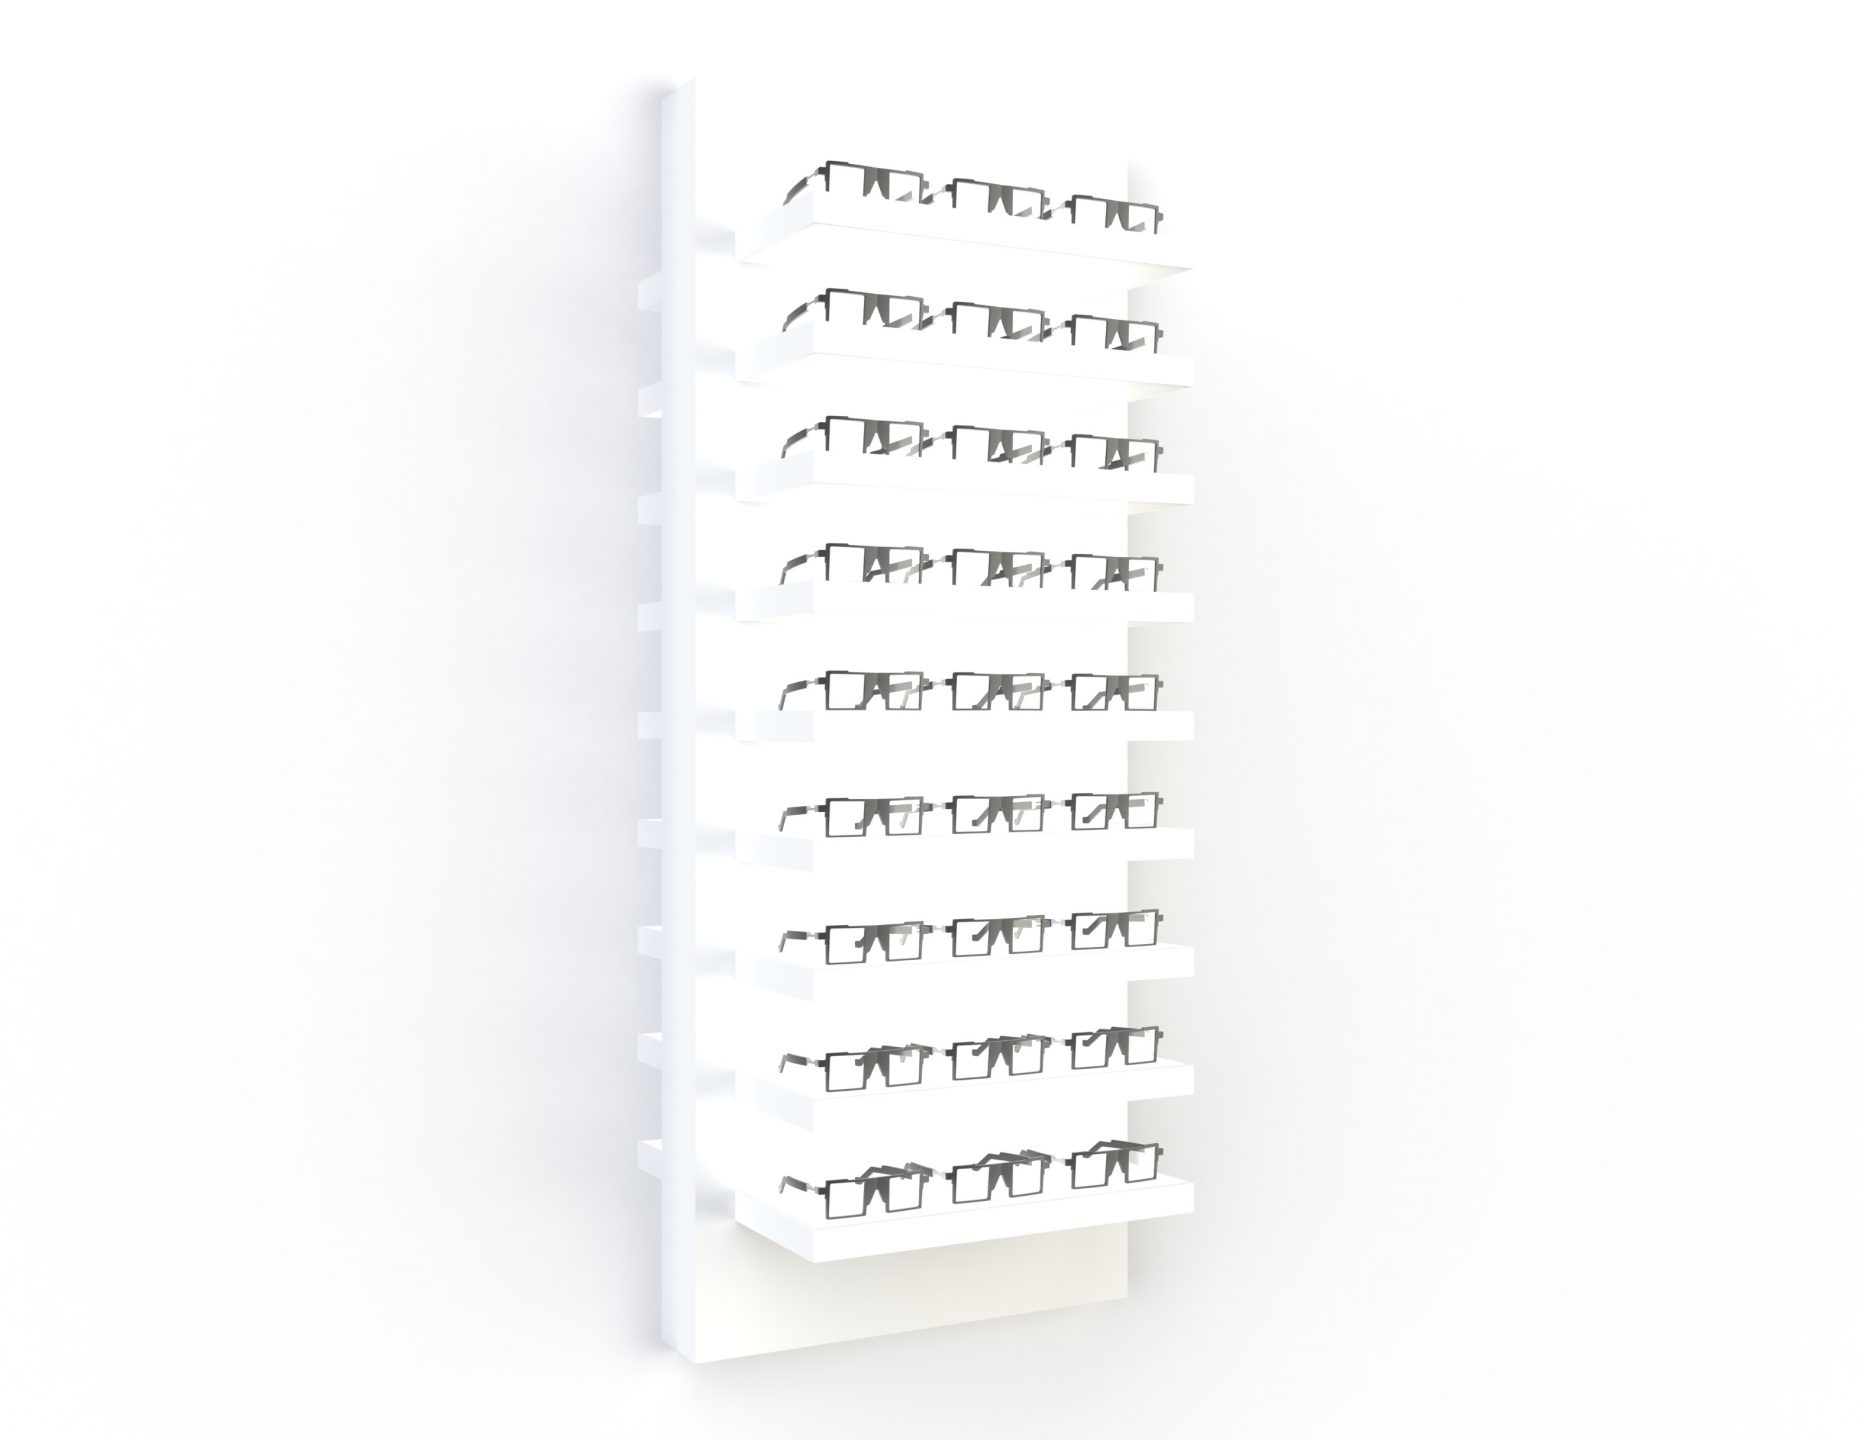 <strong>#58160W-W</strong><br>9x 35mm LED shelves<br>27 frames